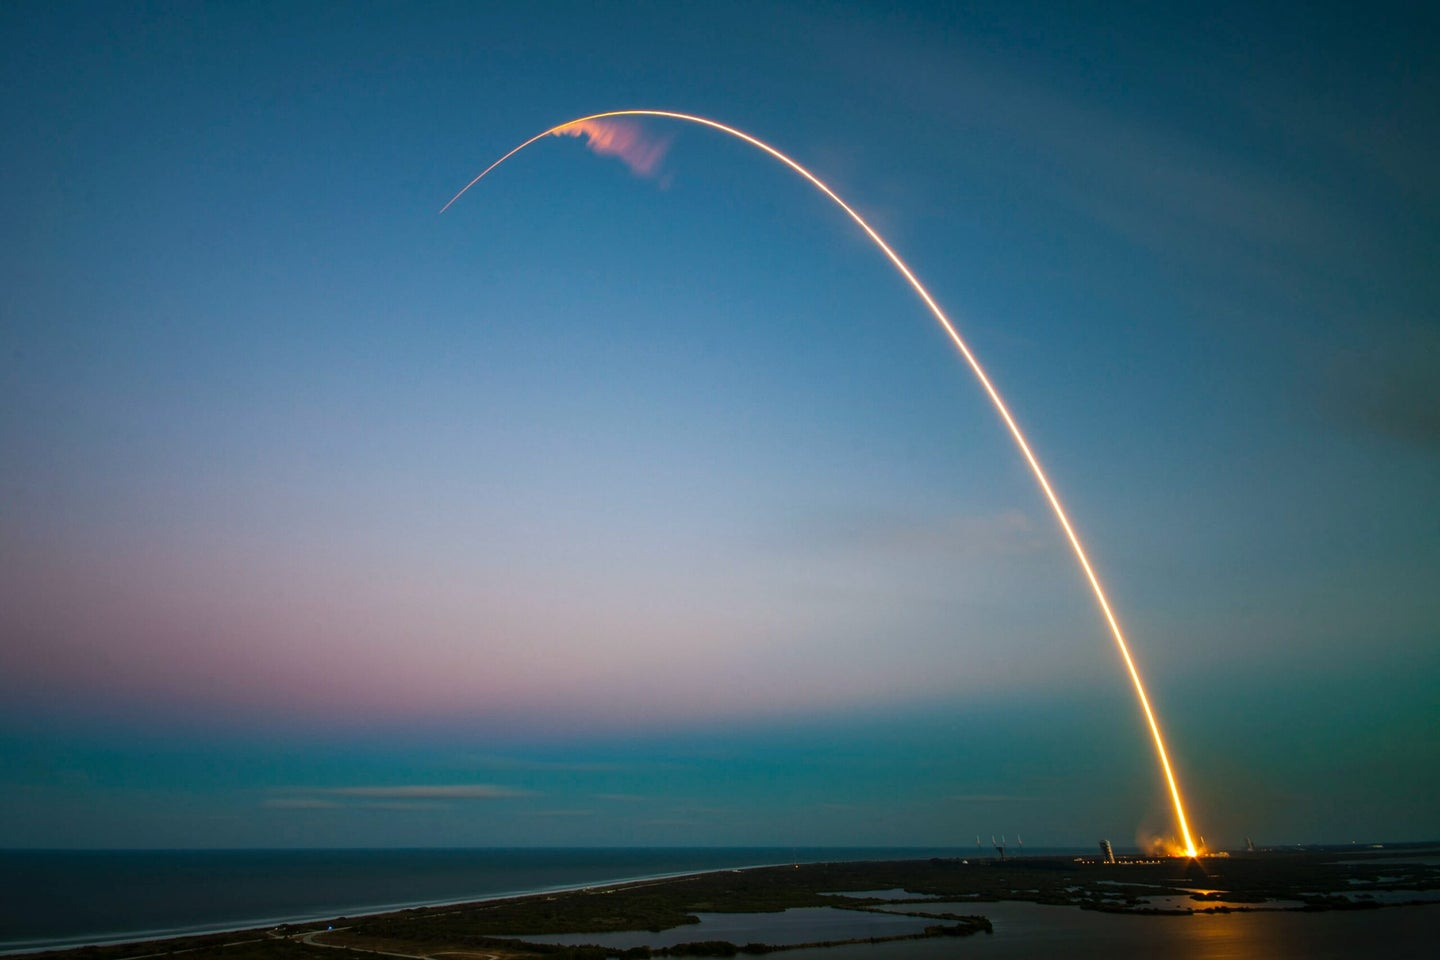 A SpaceX rocket seen launching from Cape Canaveral in Florida.